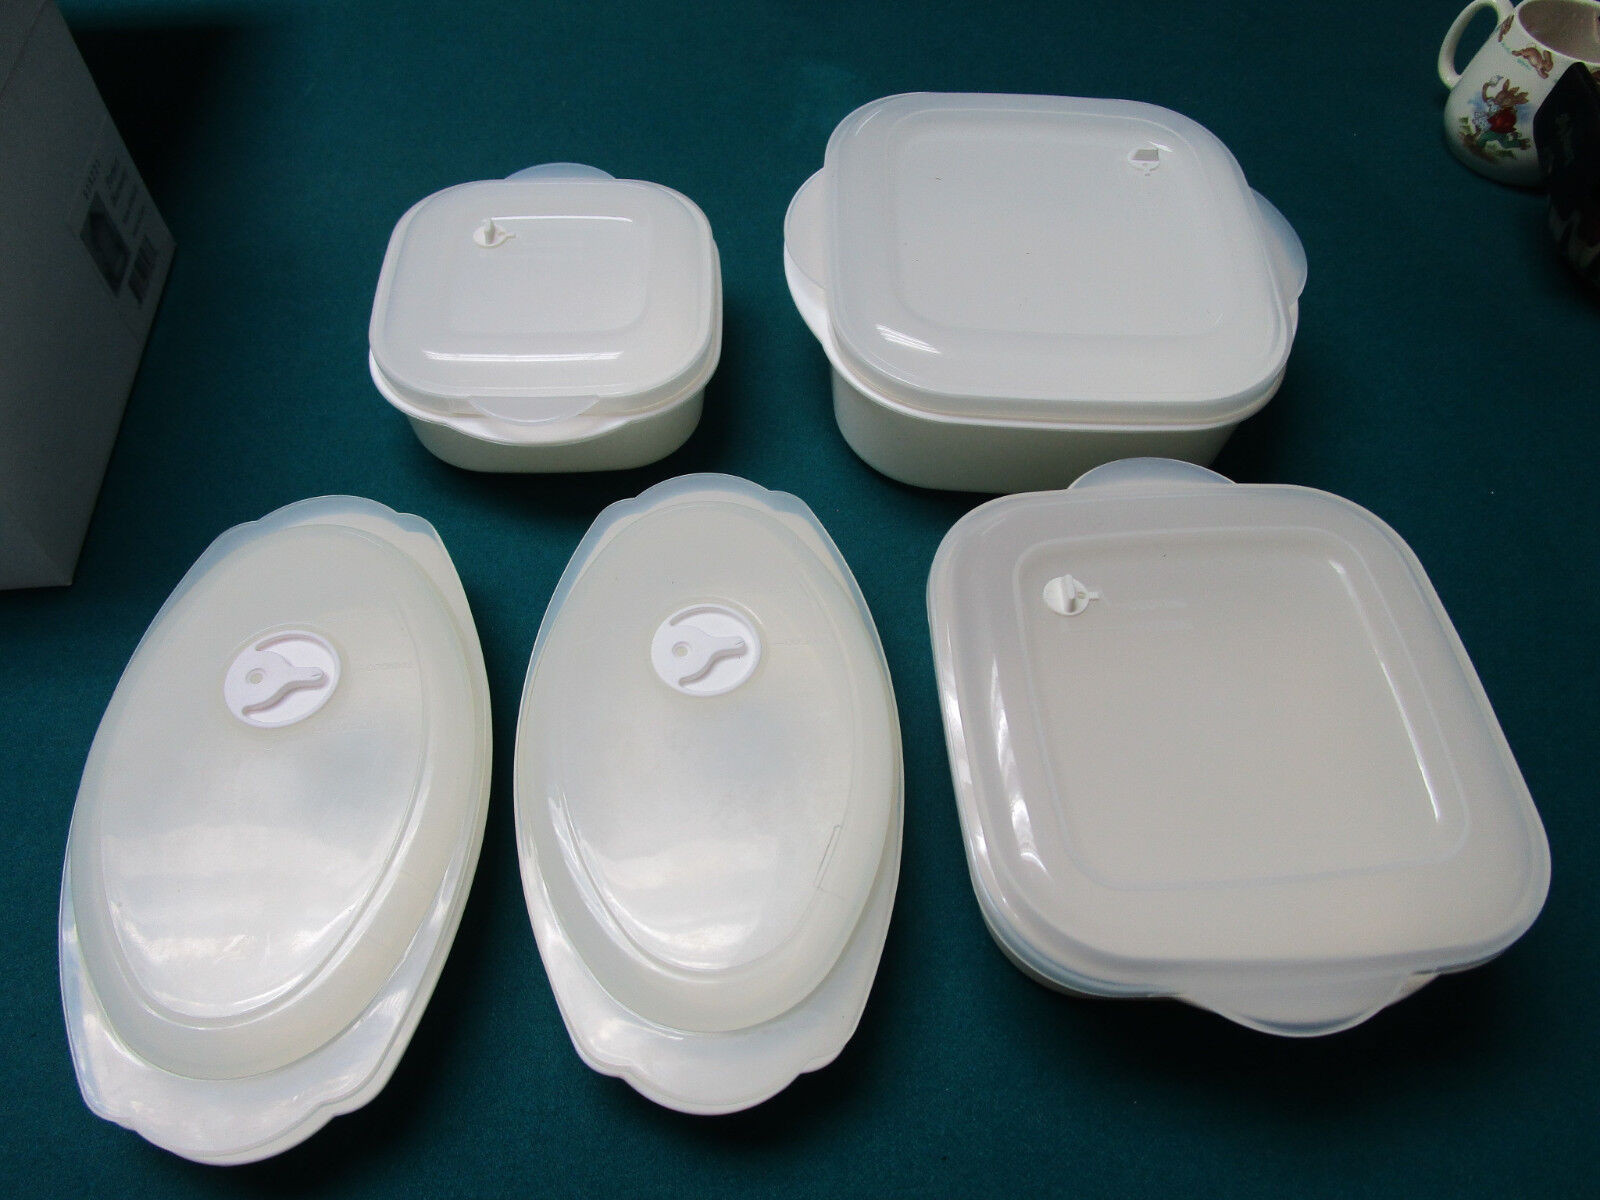 Microwave Cooking And Food Containers Lot Of 5 Pcs